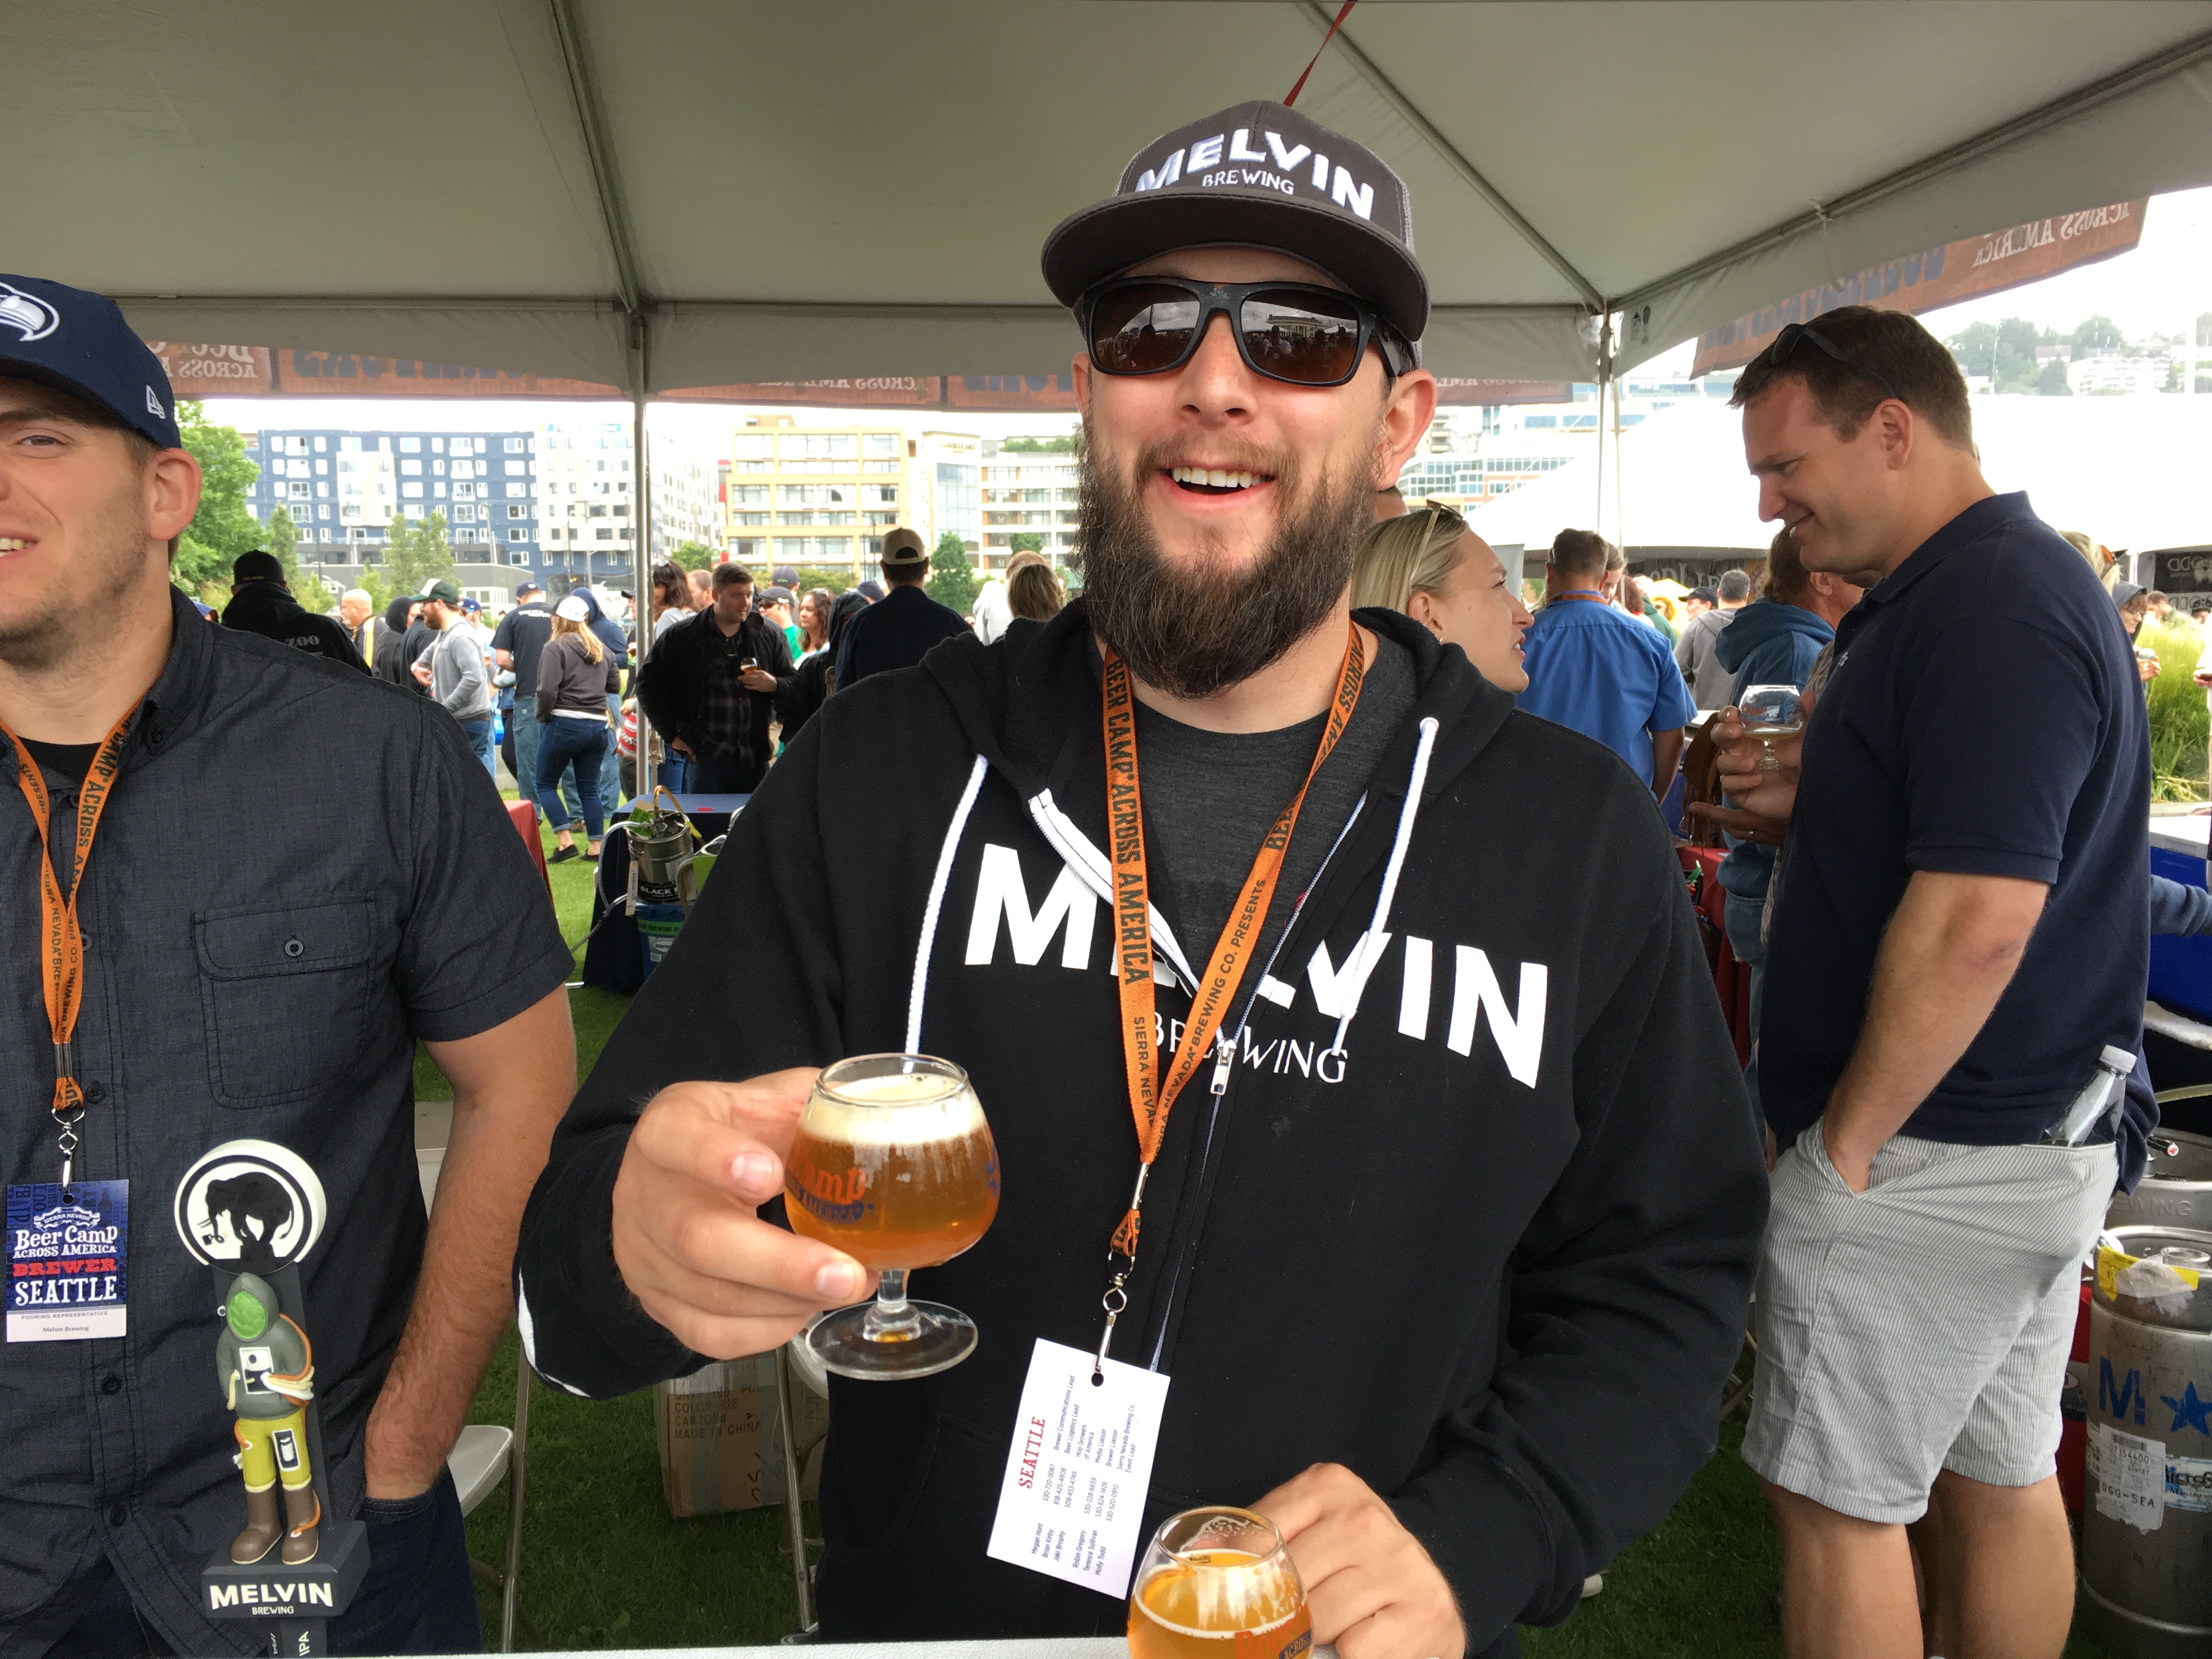 Served a tasty 2x4 from Melvin Brewing at Sierra Nevada Beer Camp Across America Festival in Seattle. (photo by D.J. Paul)